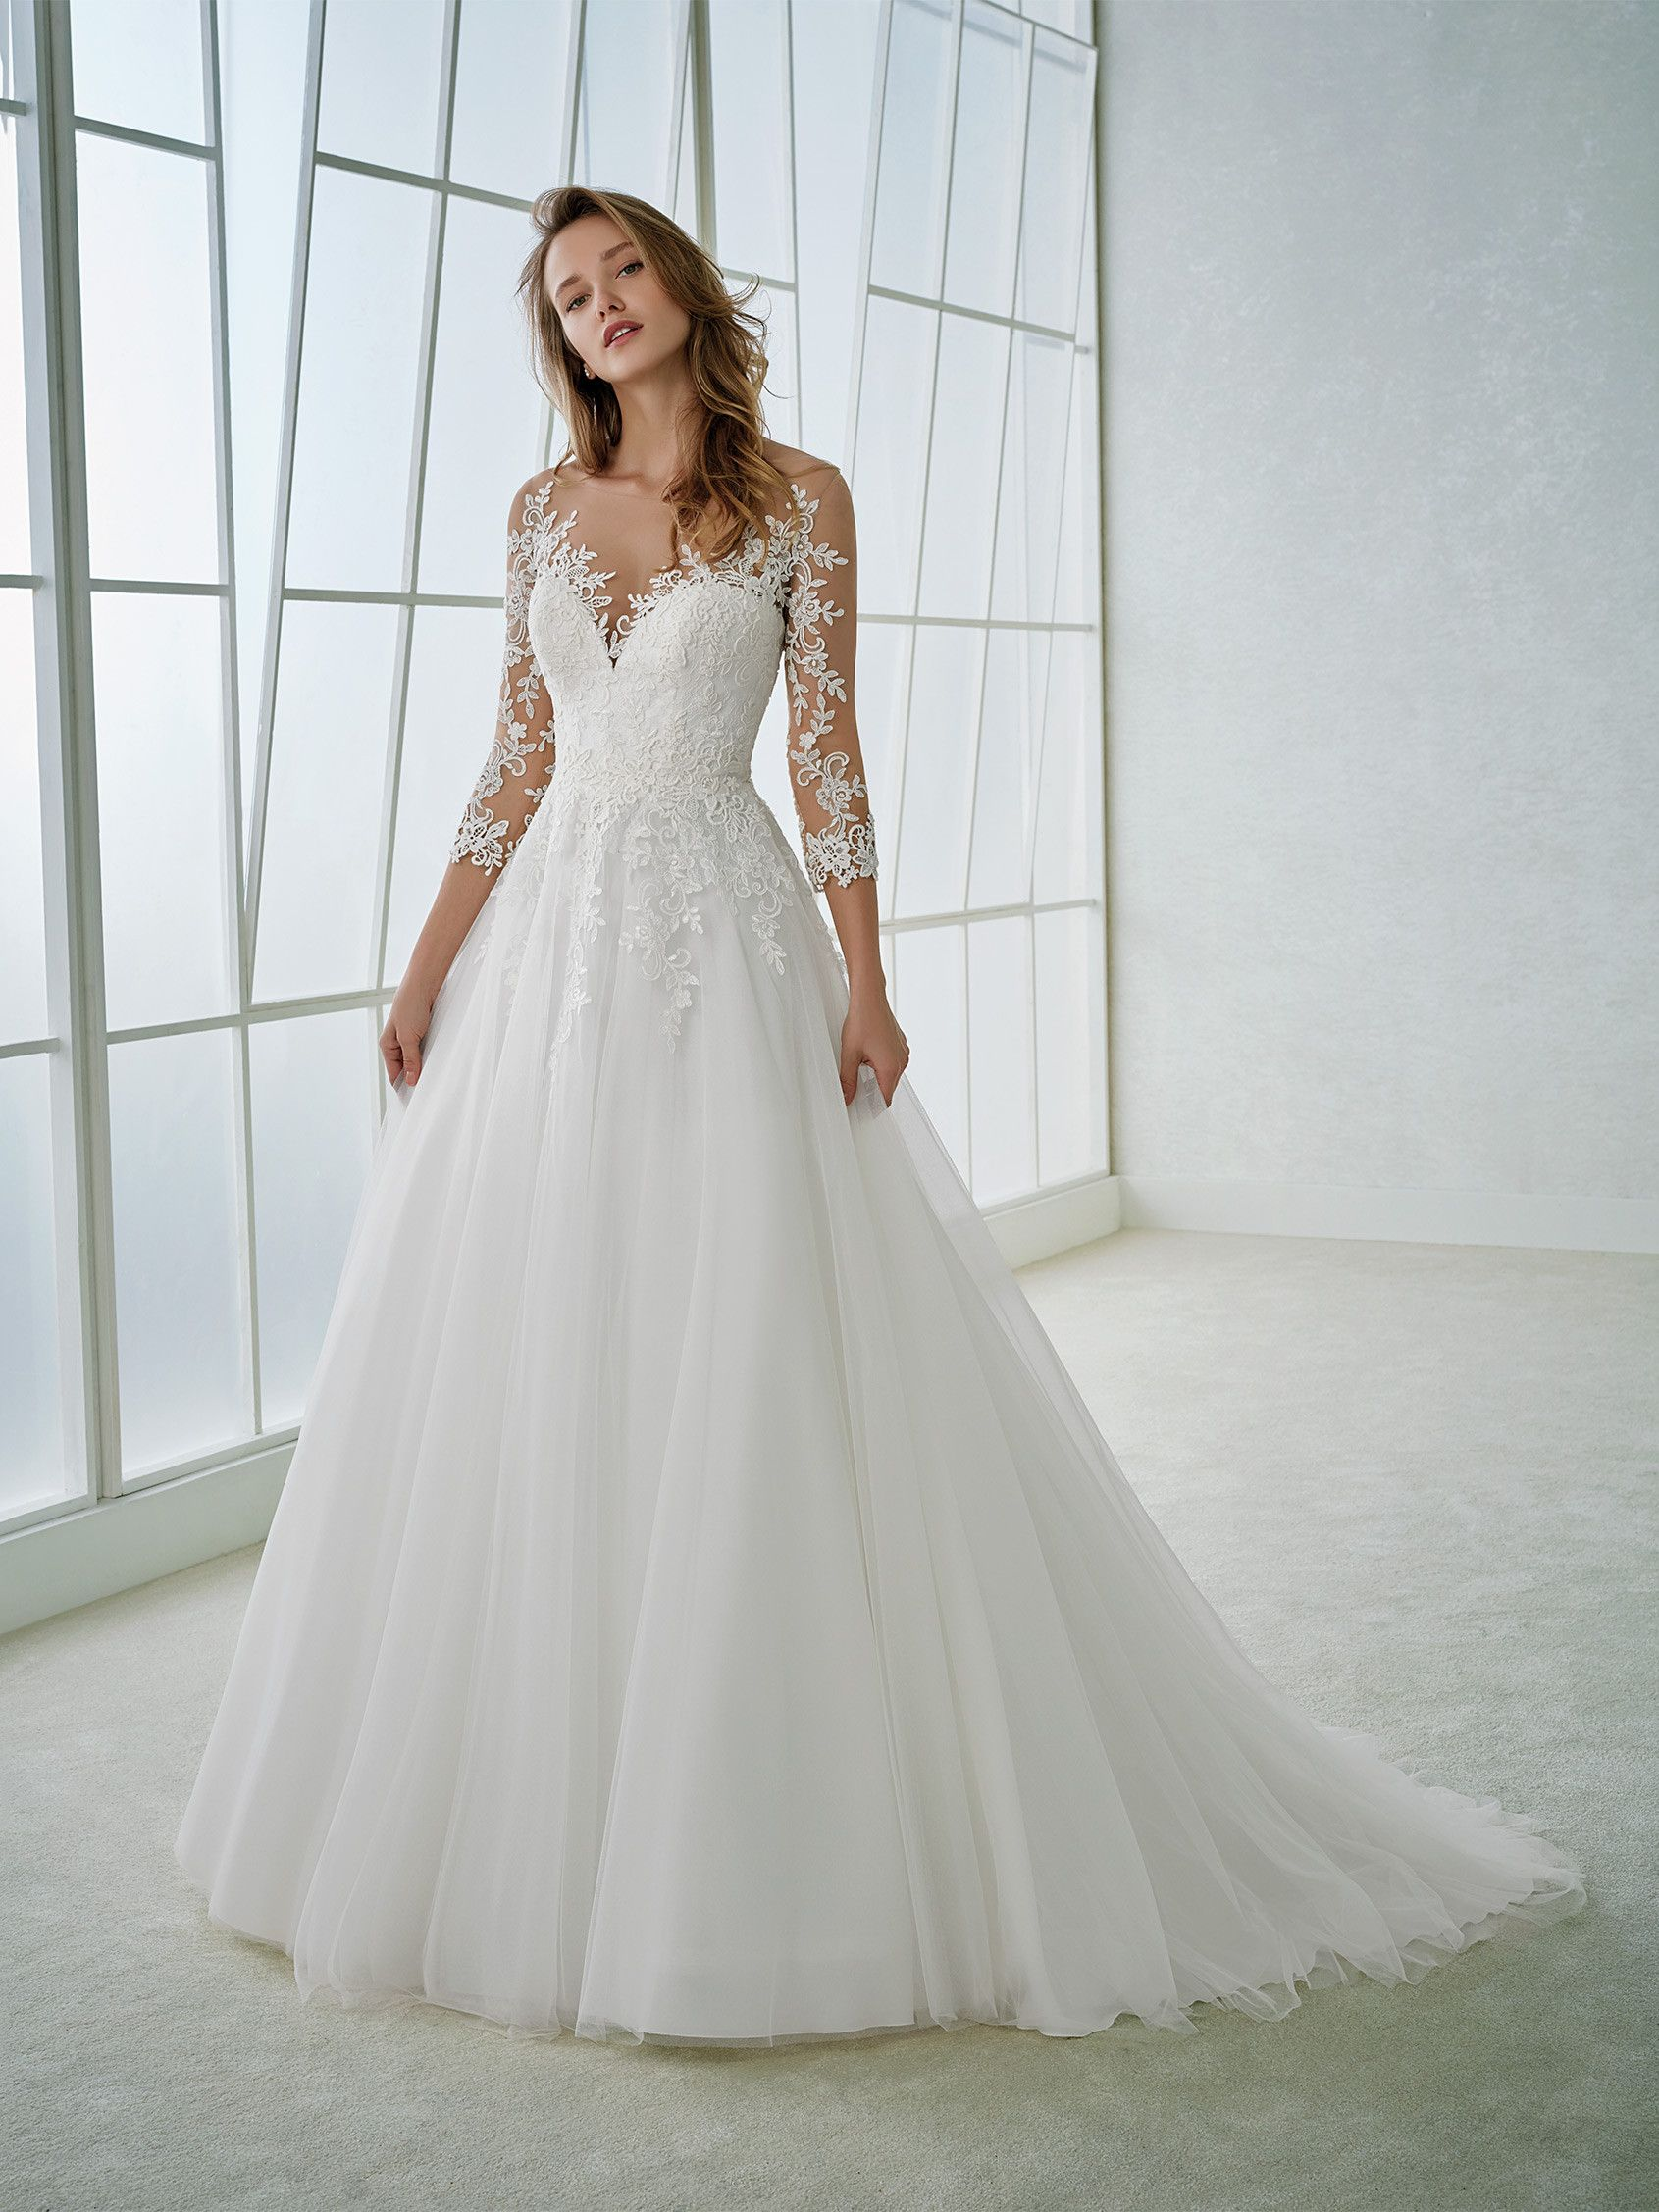 965f0f76 Marvelous wedding dress with 3/4 sleeves, a ballgown skirt and an illusion  bodice